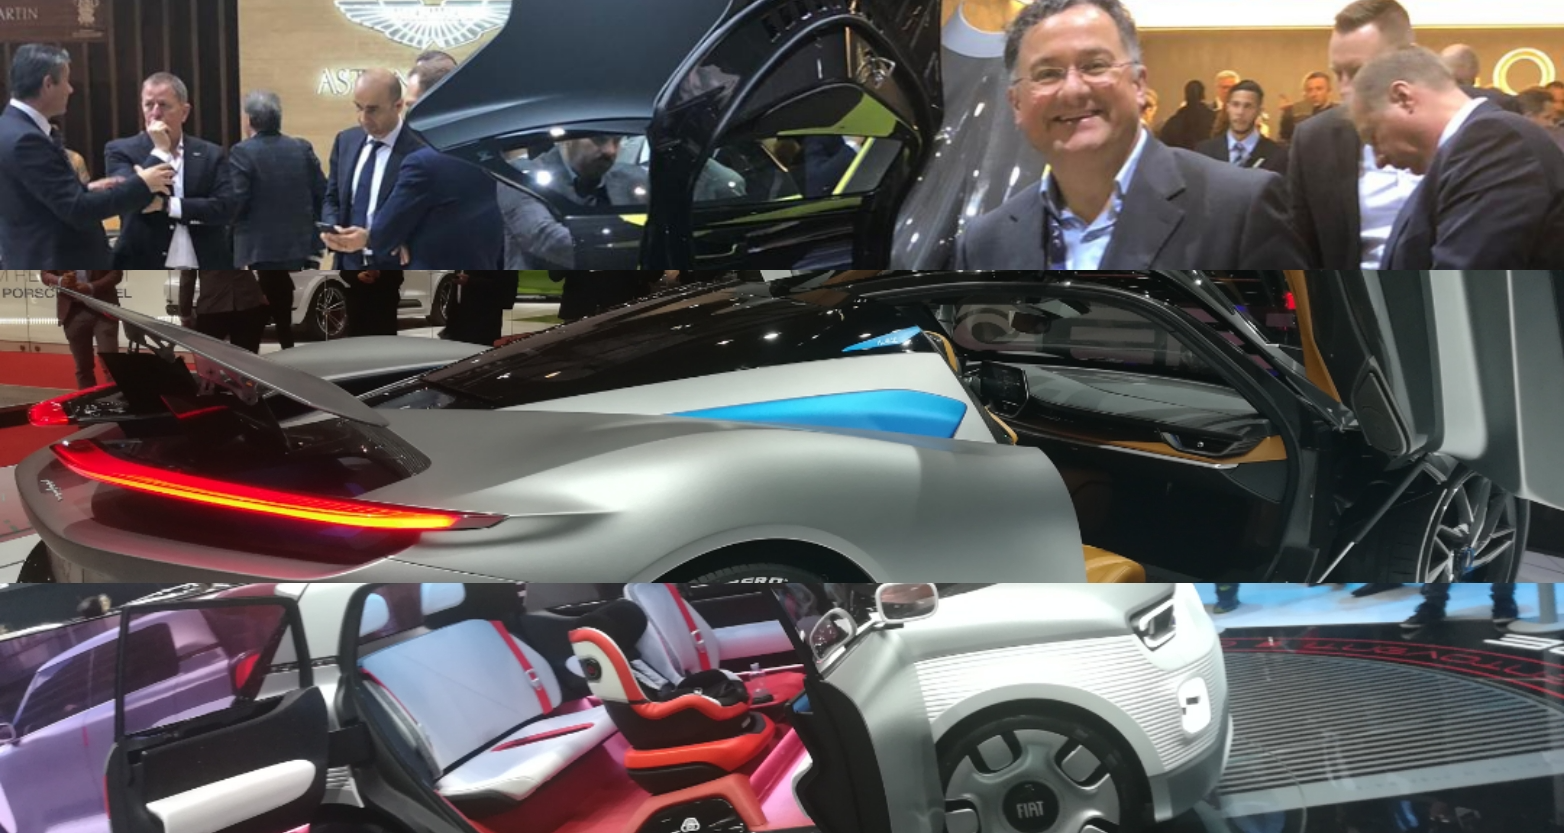 Geneva Motor Show 2019. Automotive 'perfect storm' towards the dawn of a new mobility era